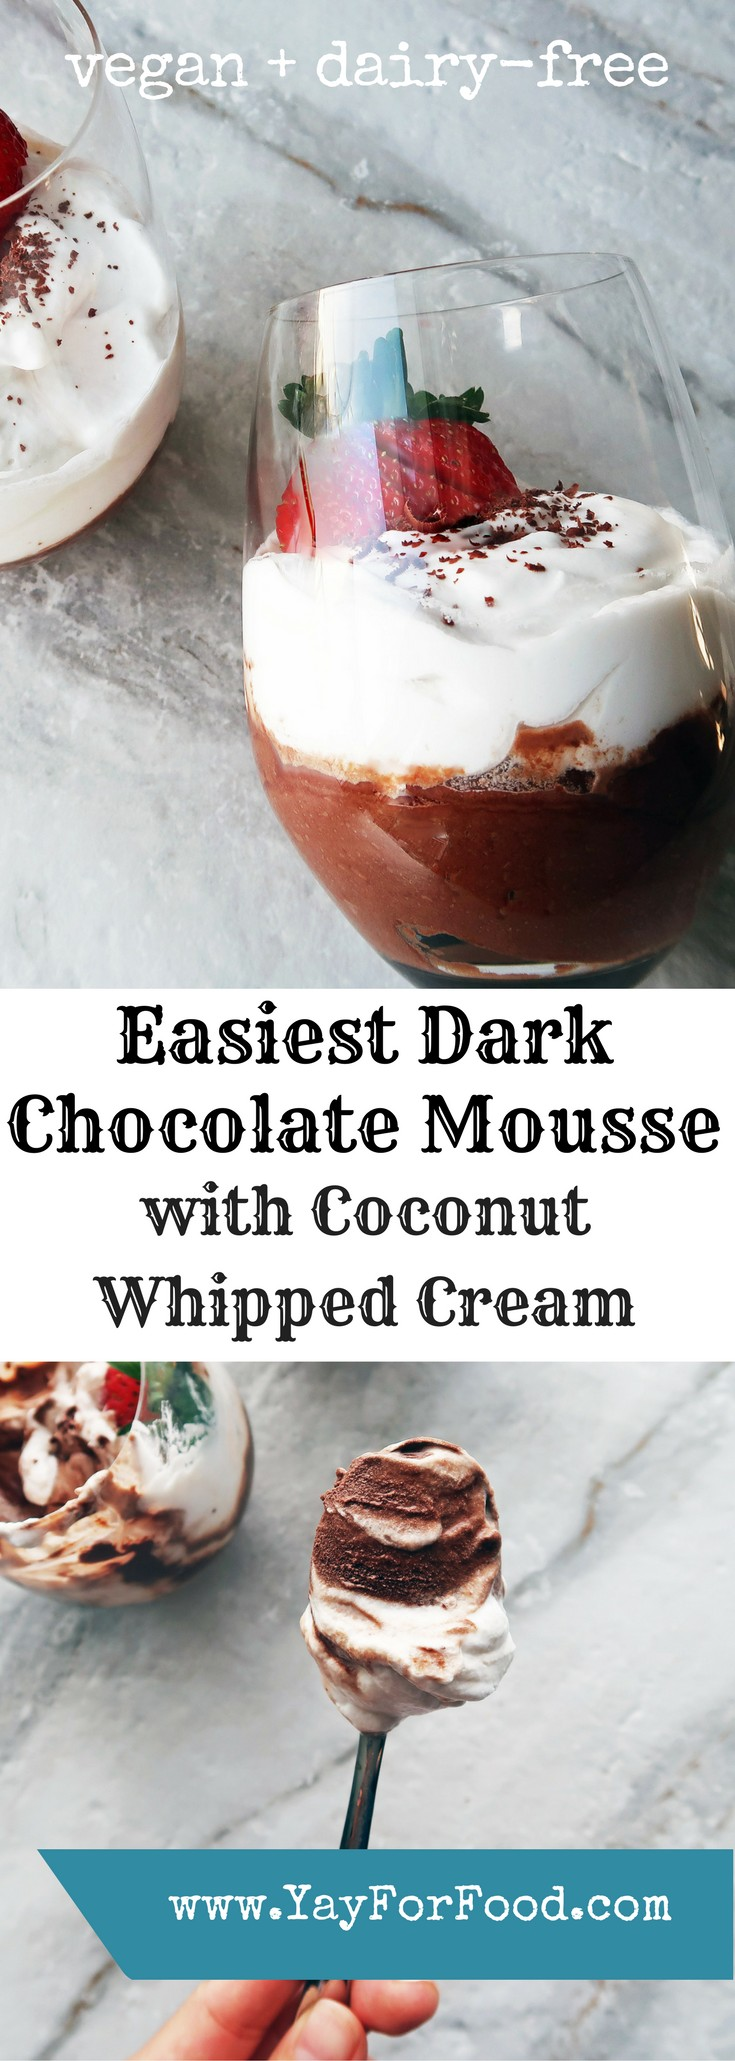 All you need is chocolate and water and you can make creamy, rich mousse in minutes. Top it off with coconut whipped cream for extra decadence!It's dairy-free and vegan too!